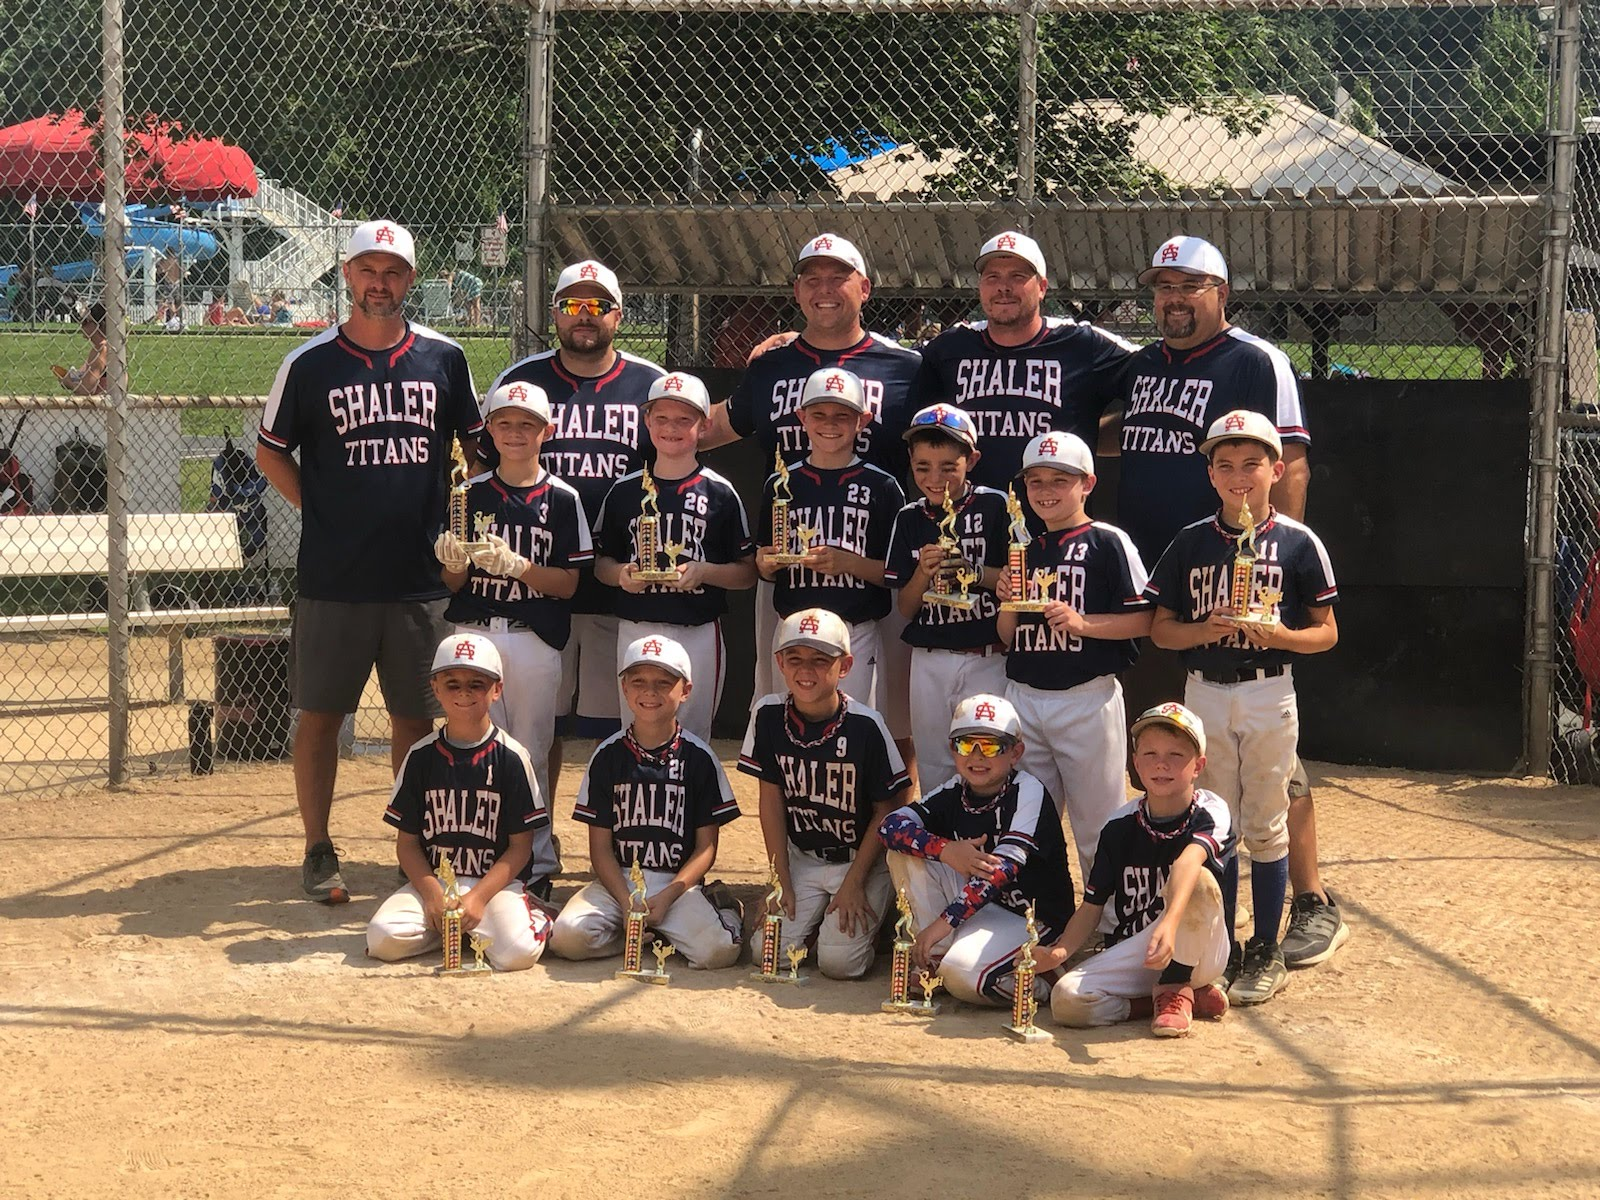 9U Boys take 2nd place in SALL Tournament